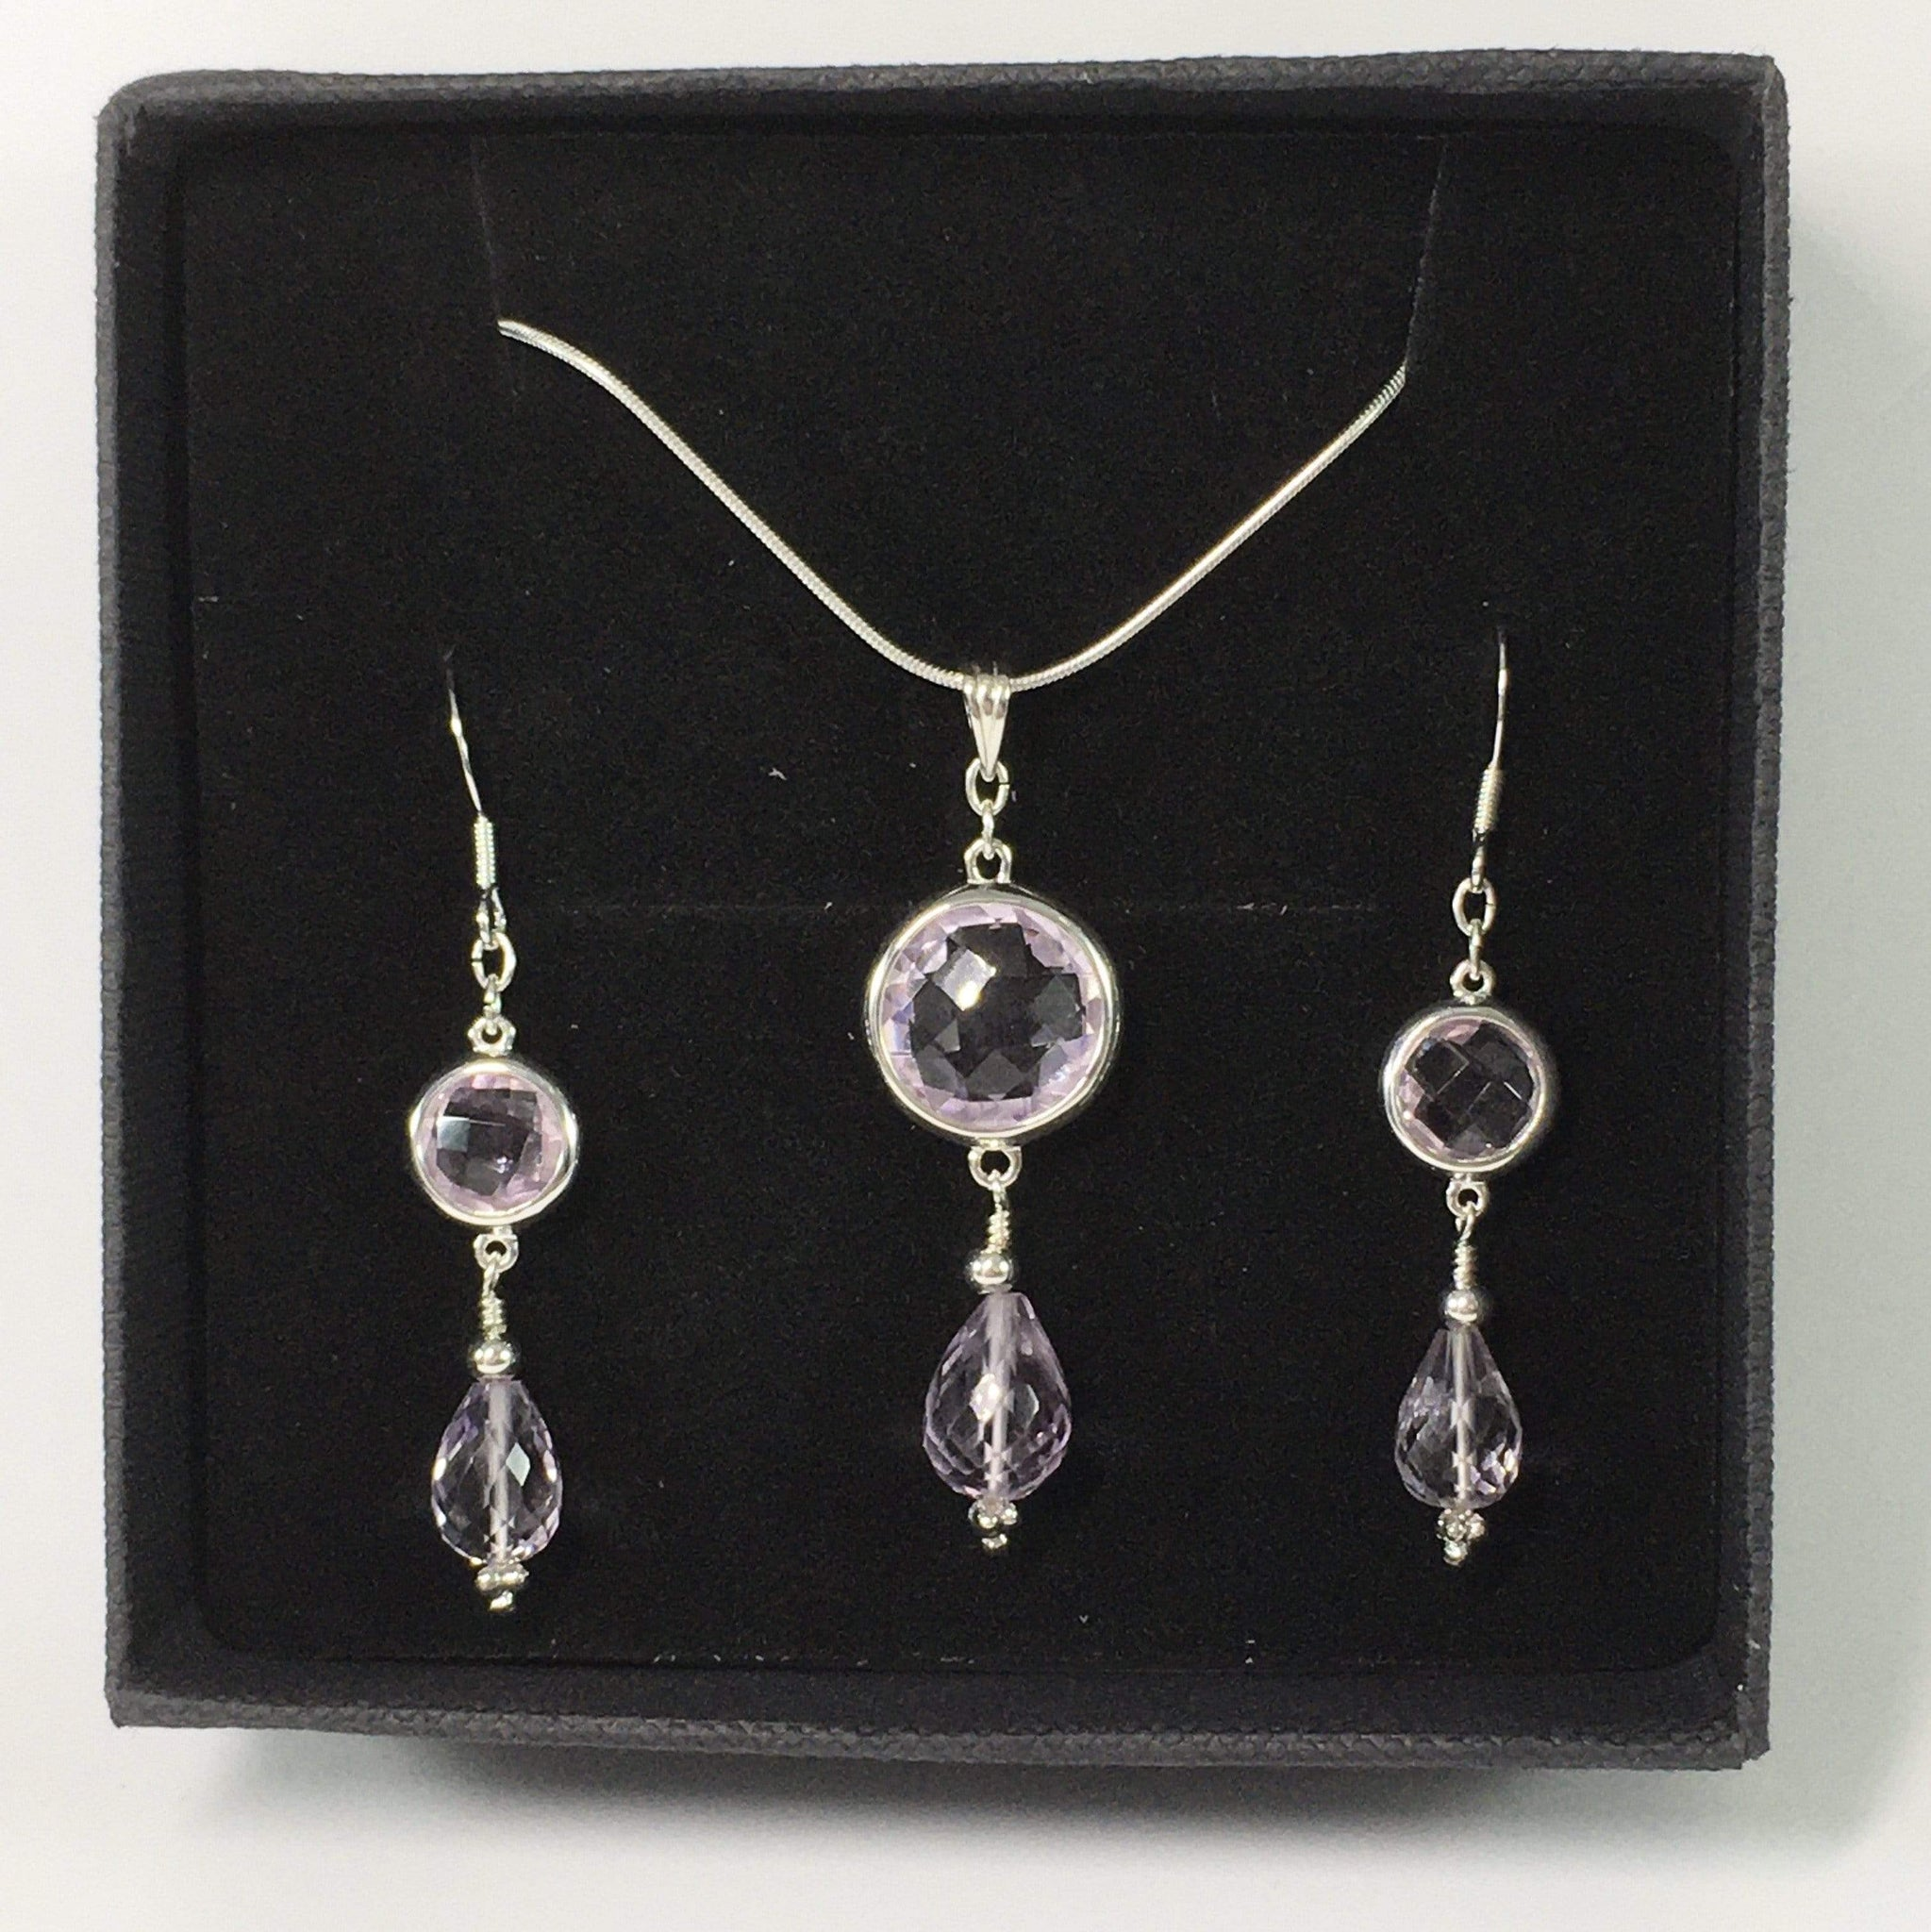 Handmade Pink Amethyst Gemstone And Sterling Silver Necklace Set